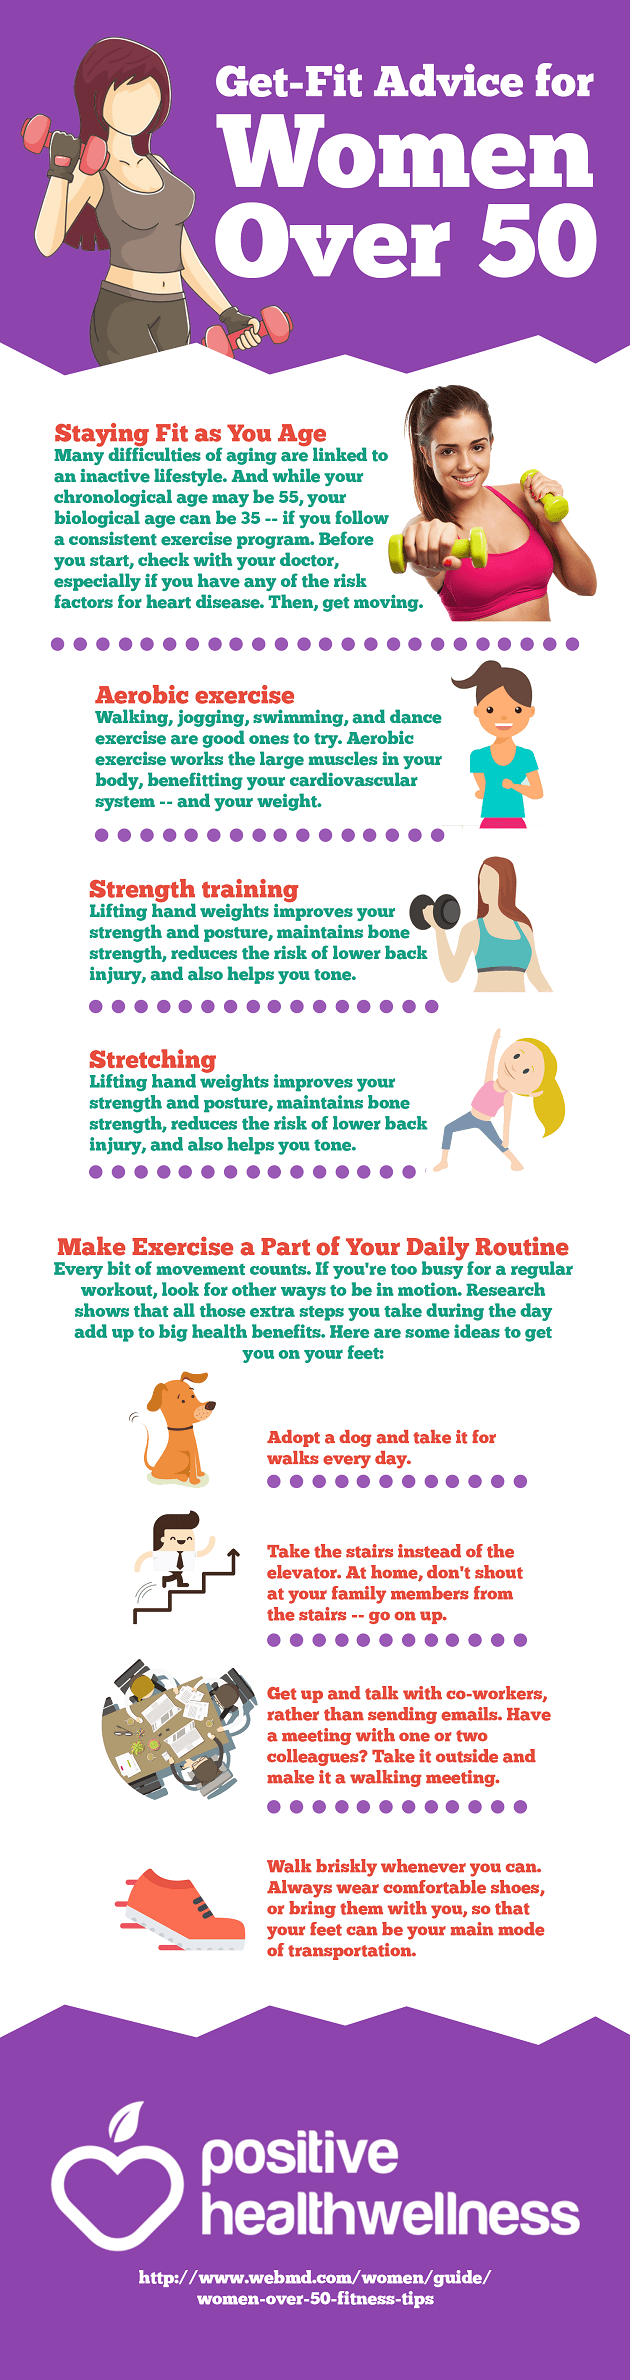 Get-Fit Advice for Women Over 50